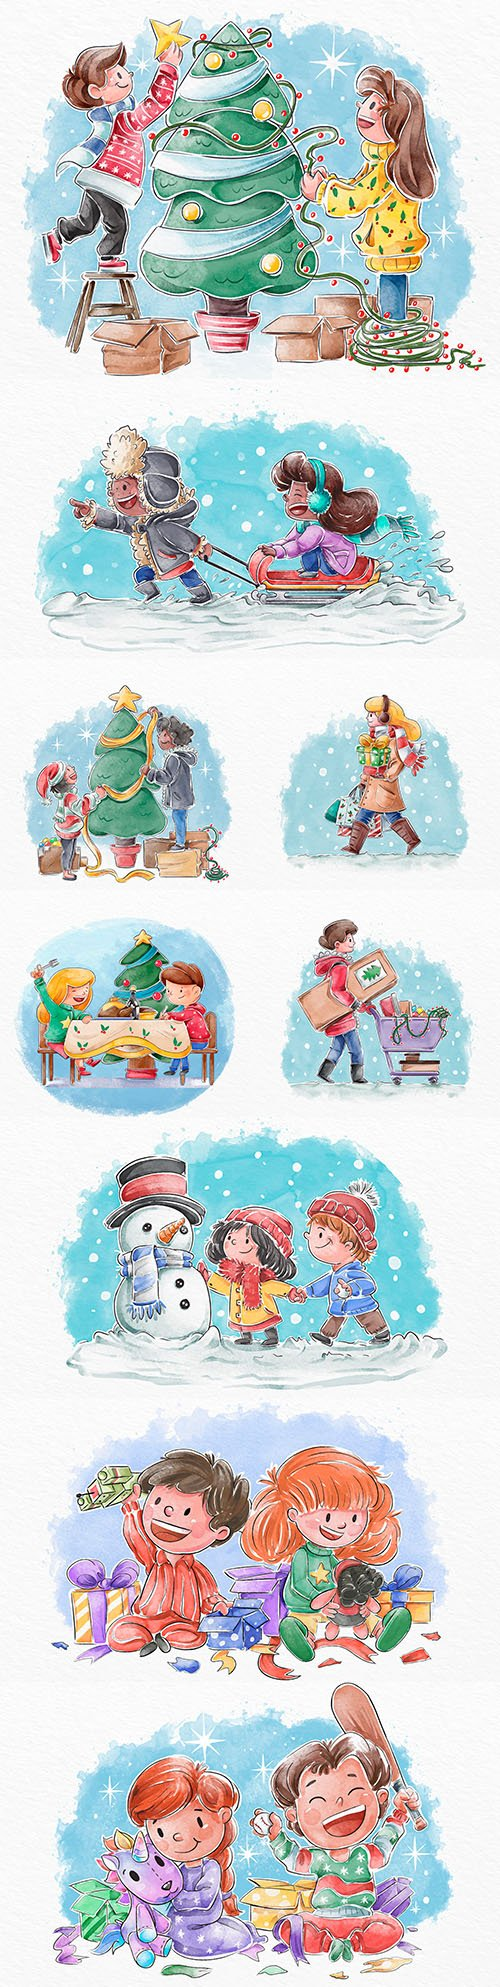 Christmas dinner and gifts illustration of different scenes